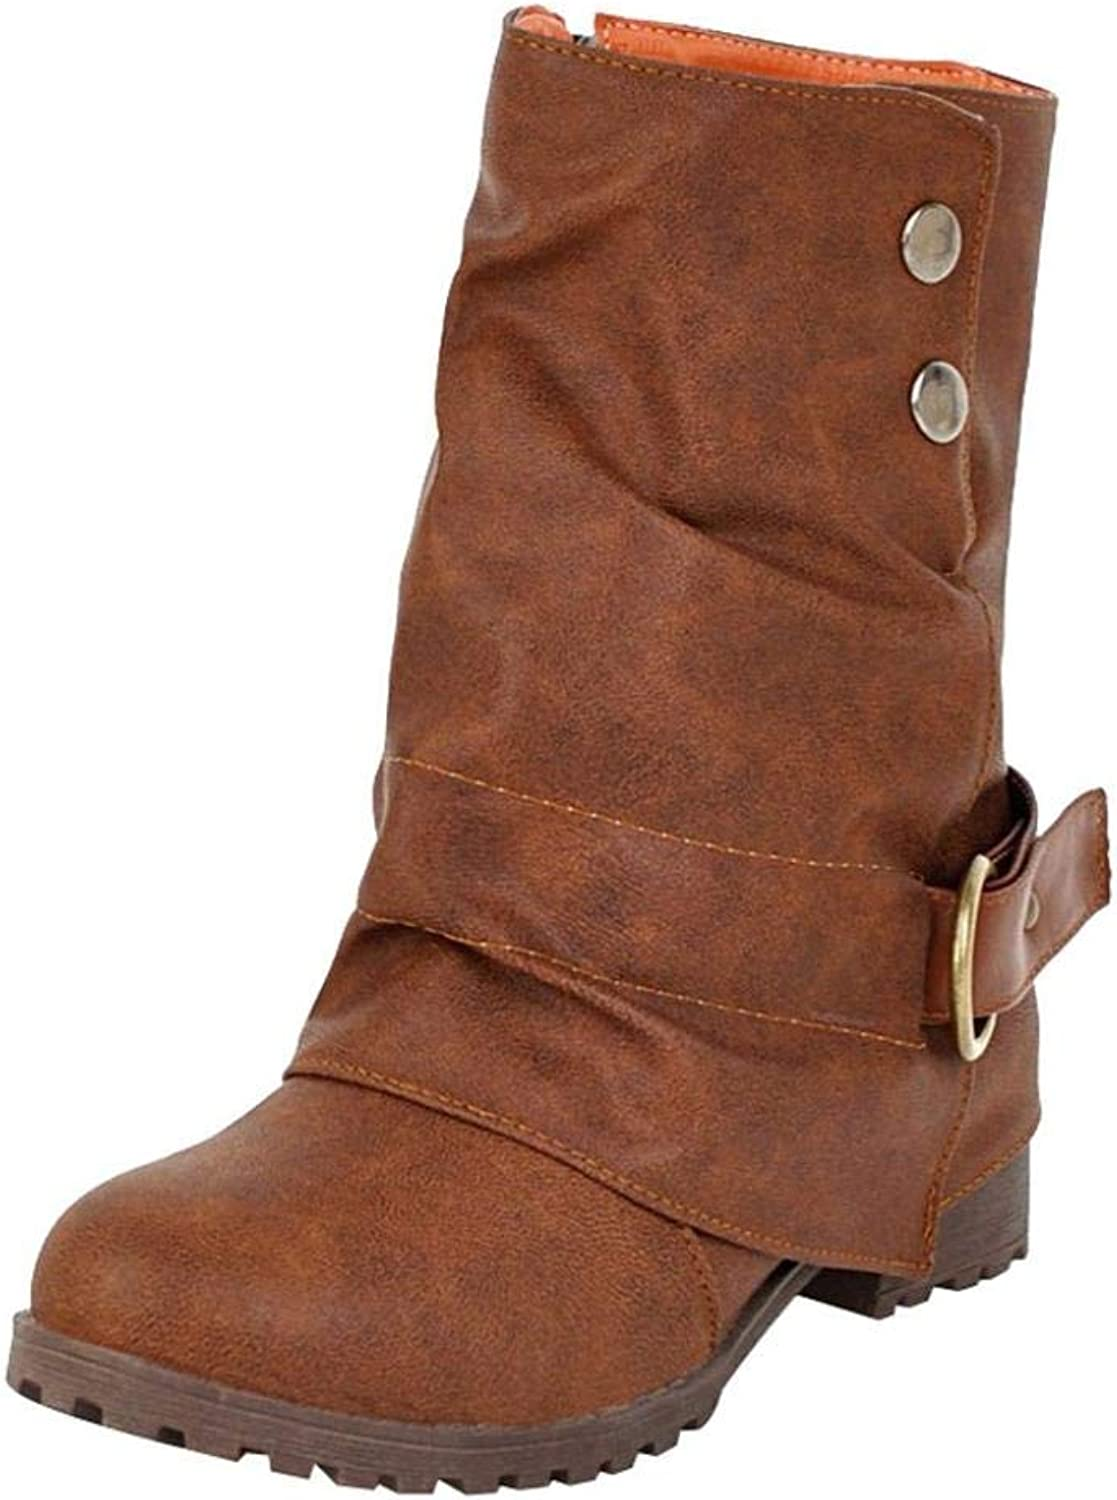 GouuoHi Womens Boots Fashion Warm Short Leather Boots Women Buckle Faux Leather Patchwork shoes Leisure Elegant Cosy Wild Tight Super Quality for Womens